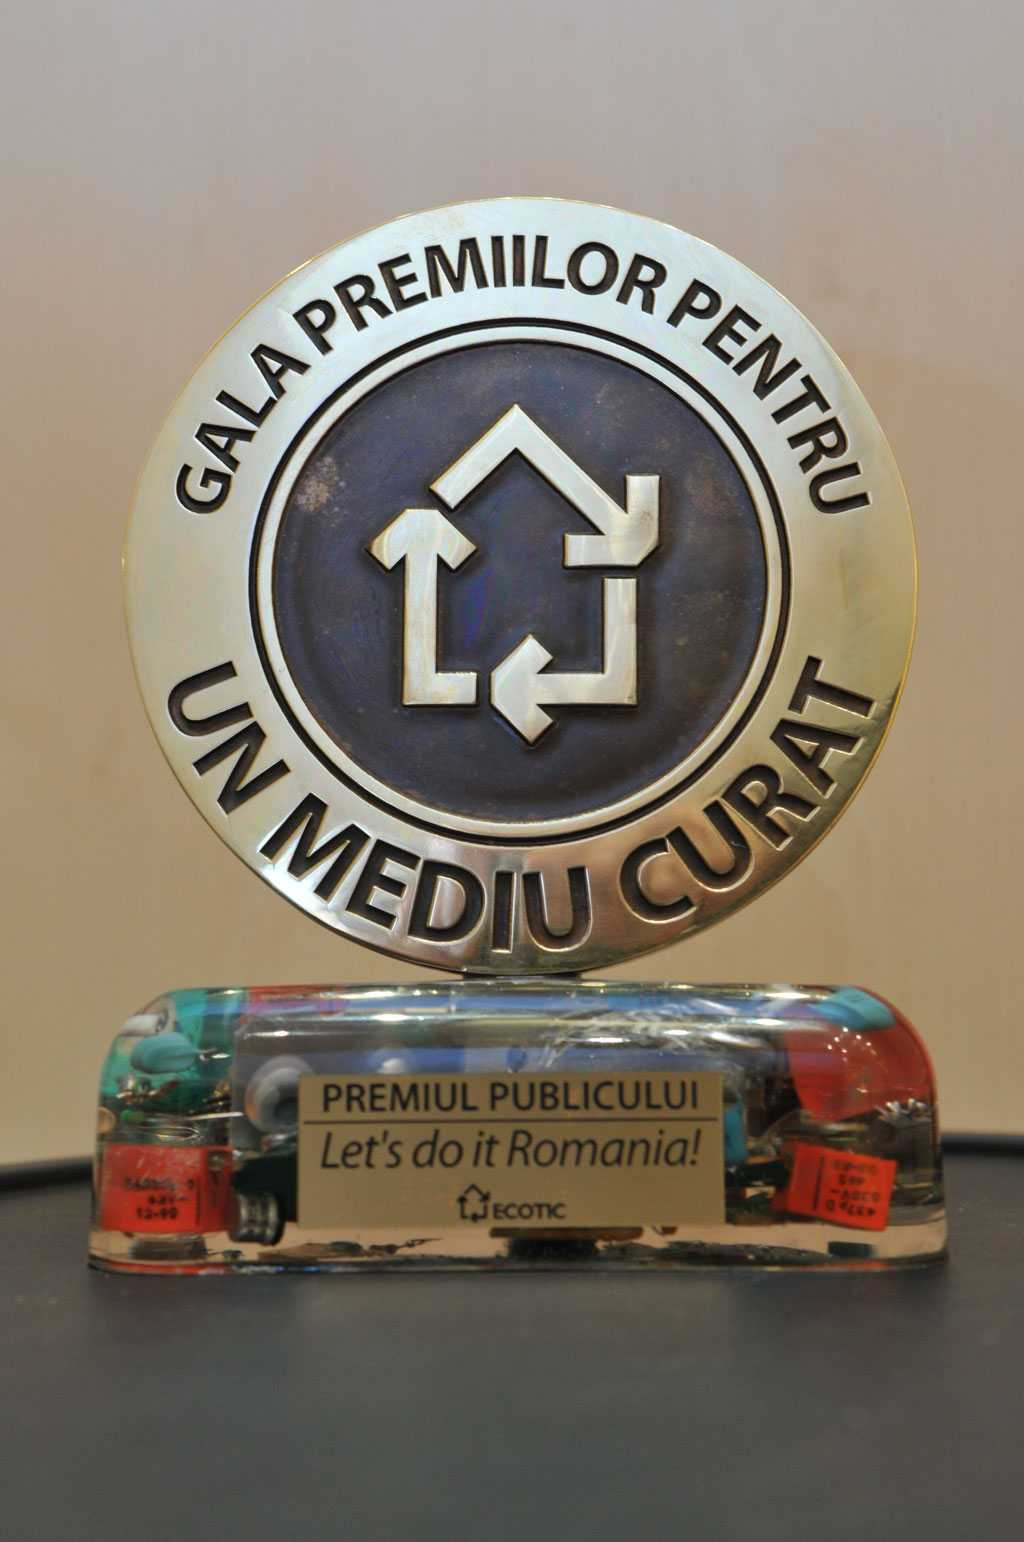 Project Gala Awards for a Clean Environment, second edition